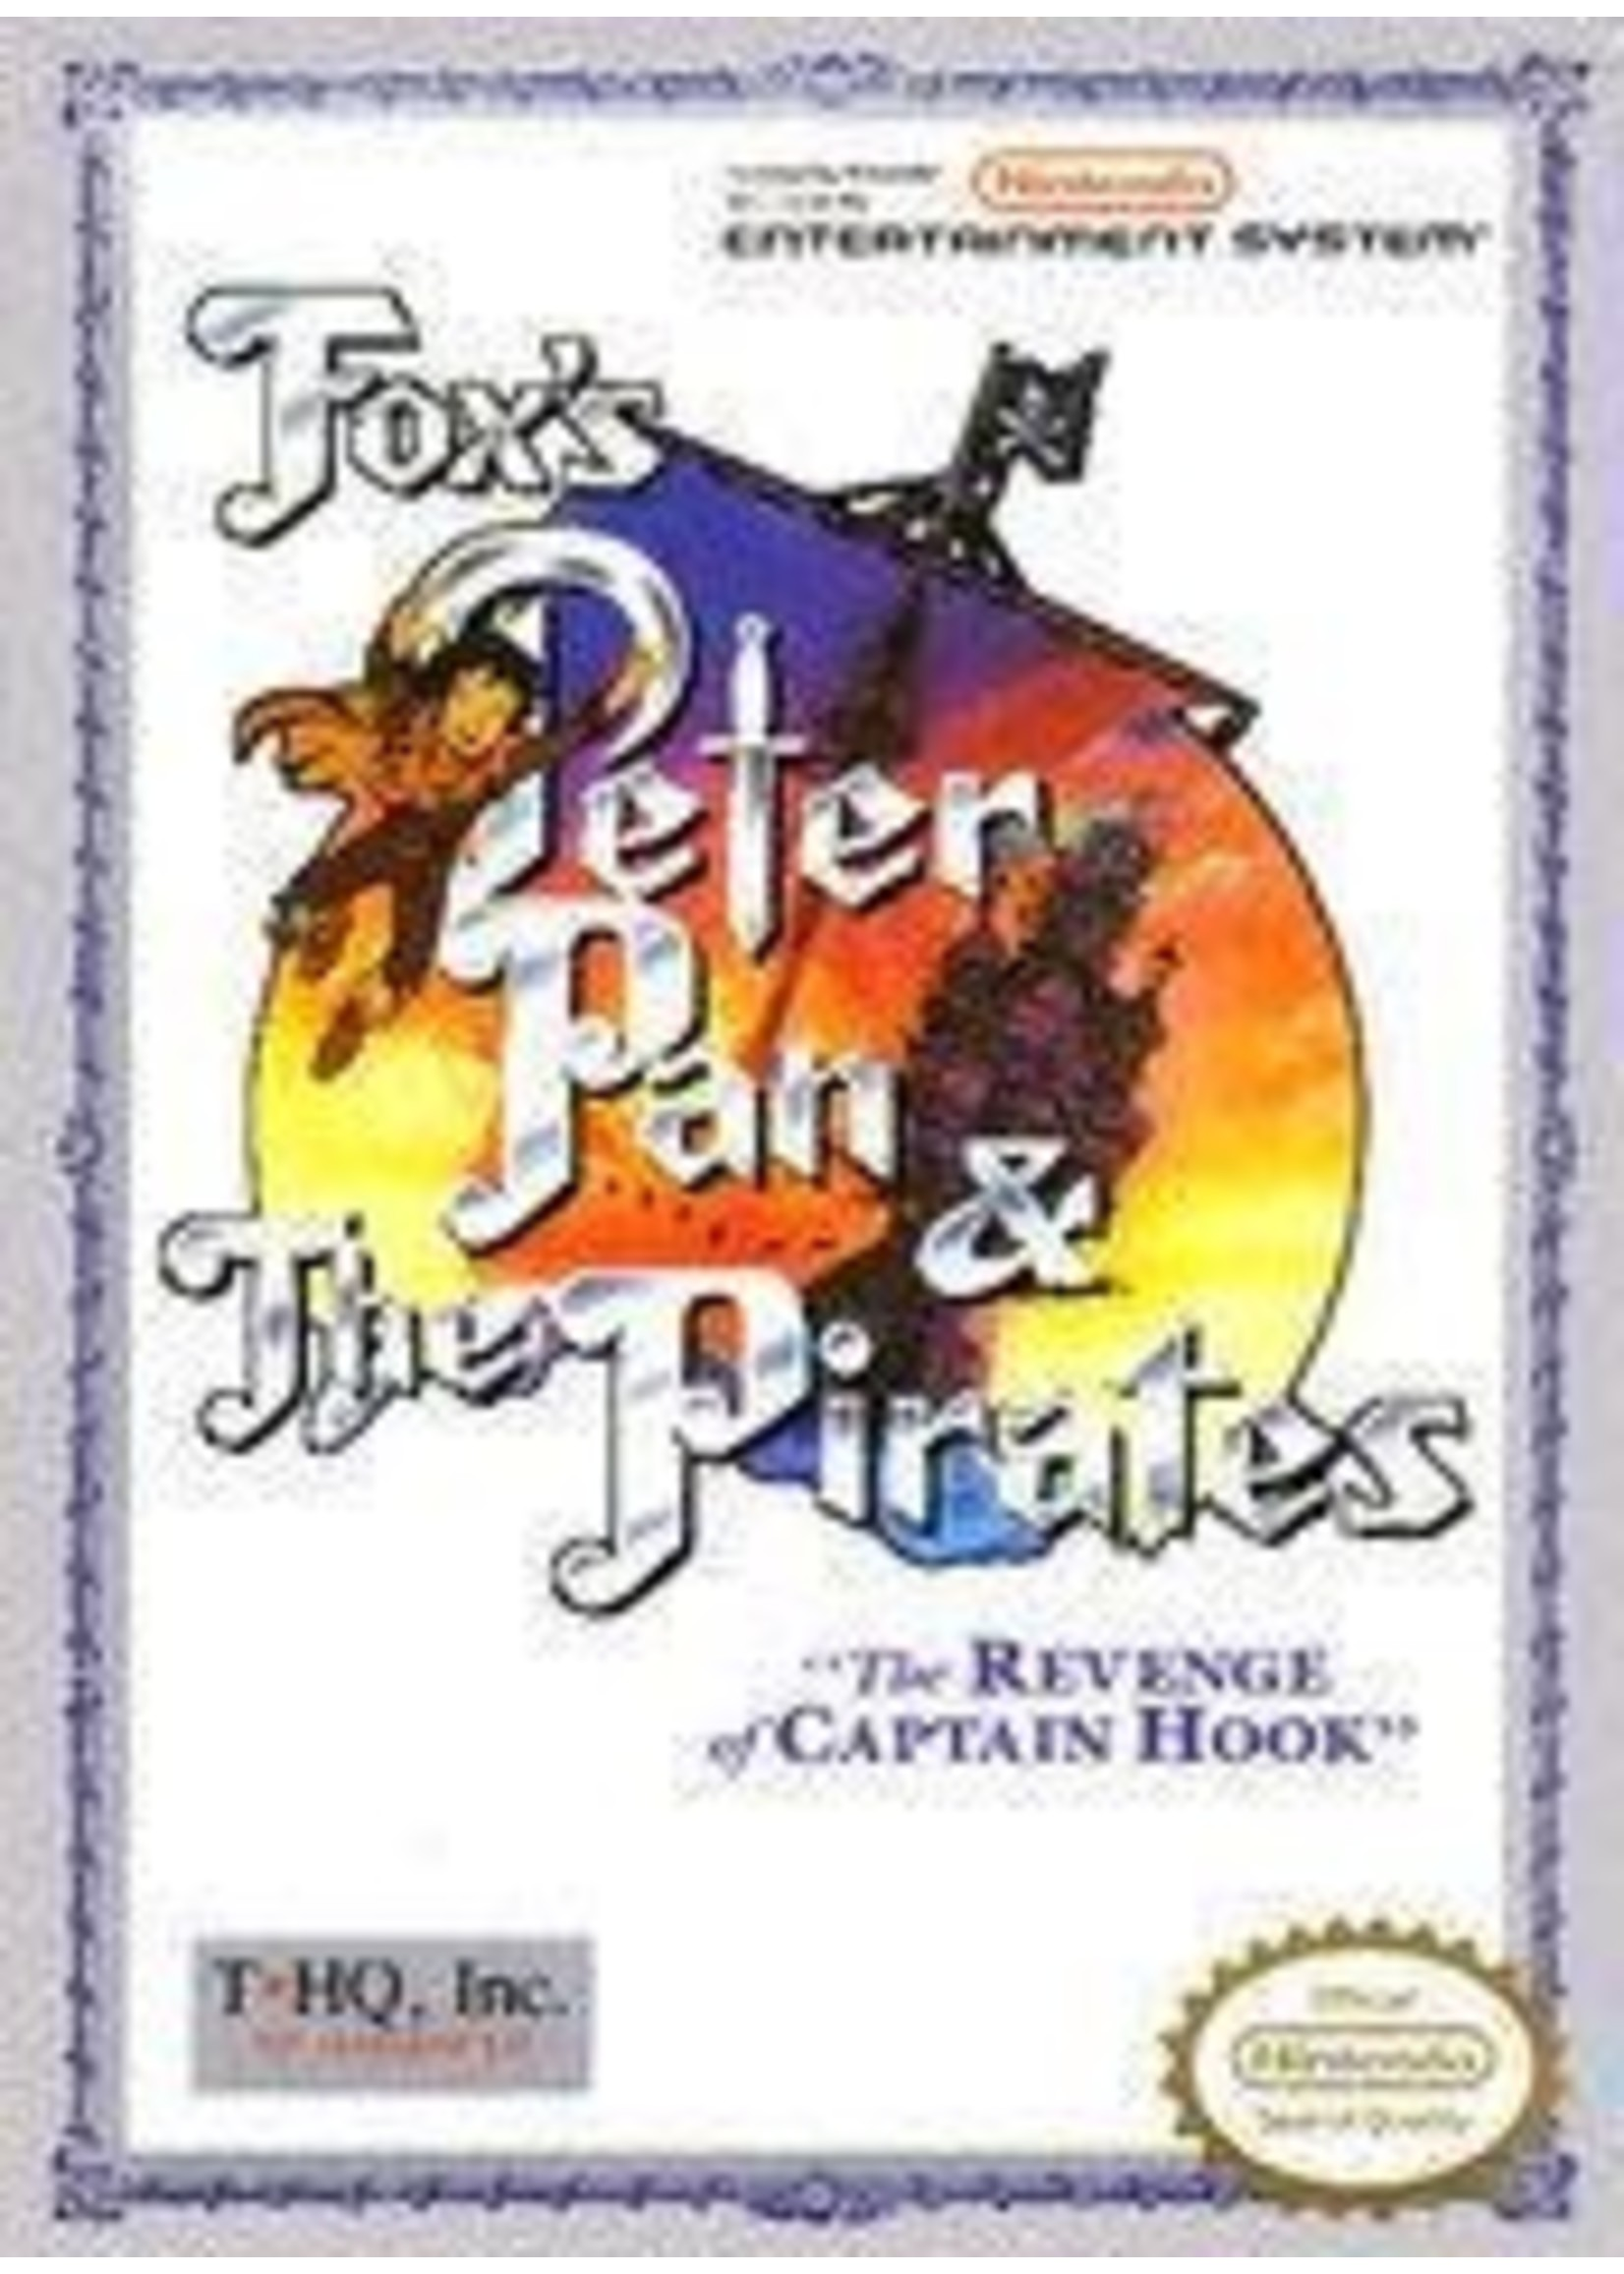 Peter Pan And The Pirates NES